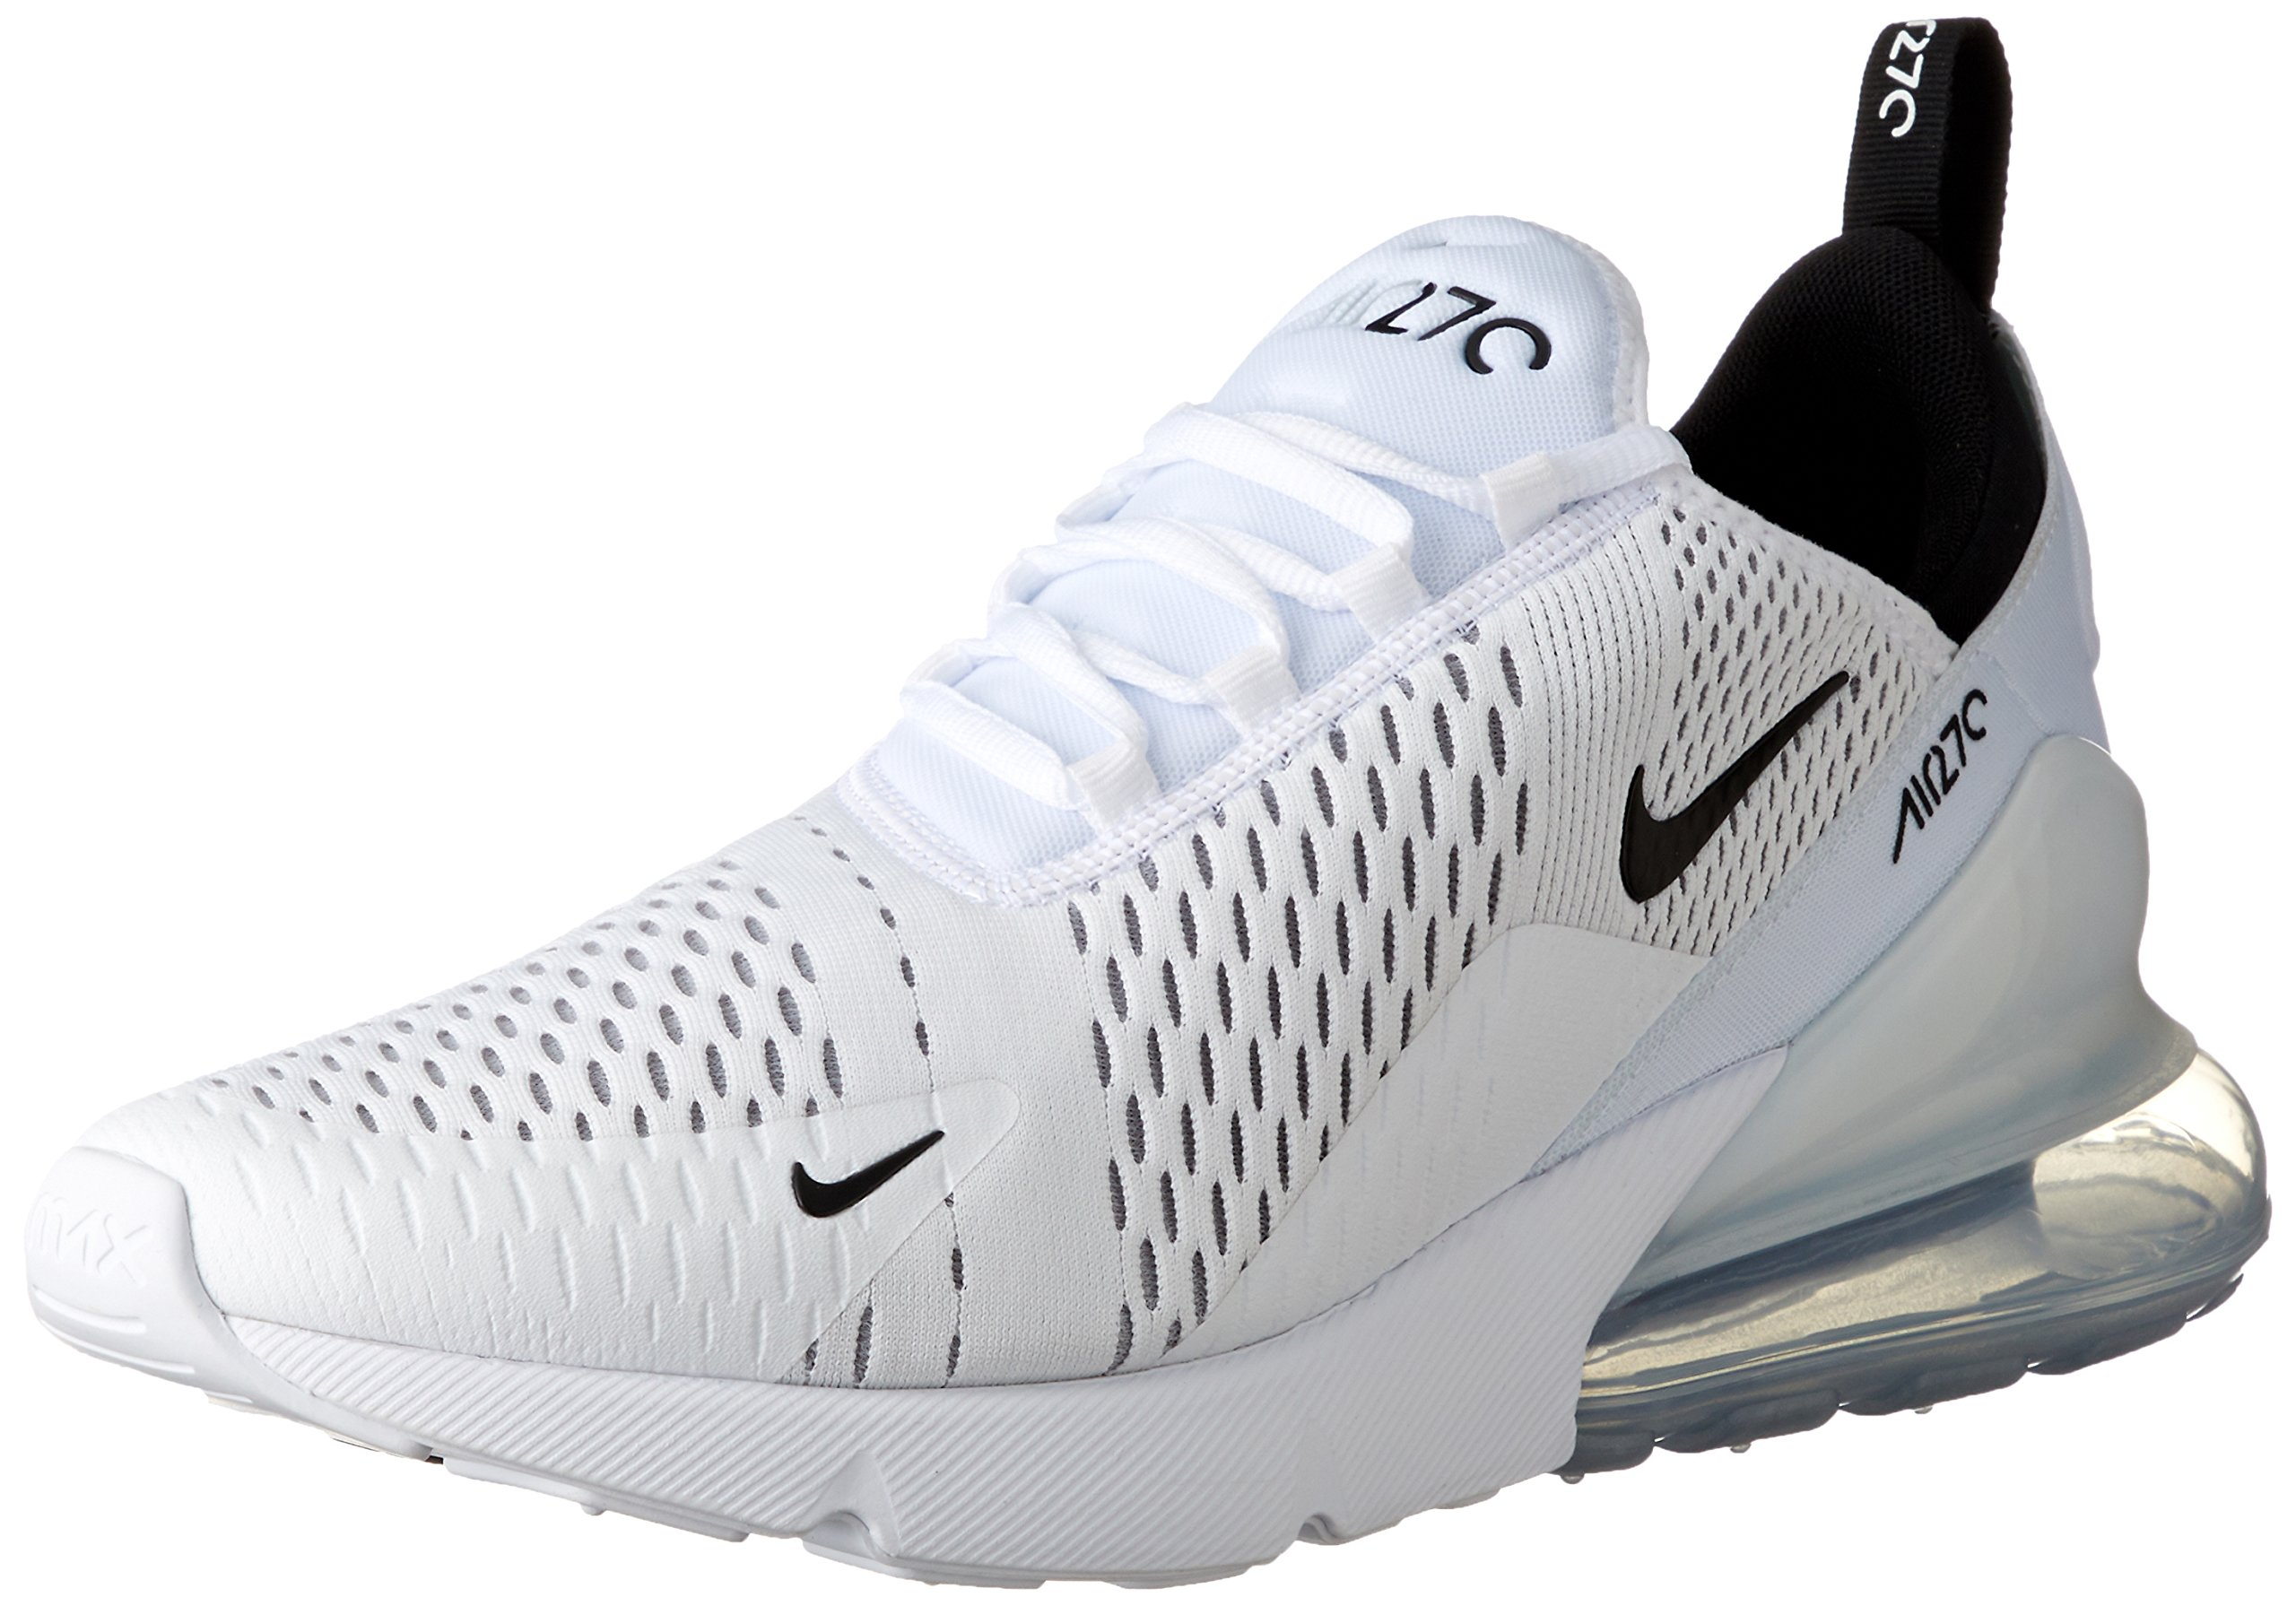 b7d800774dc395 Galleon - Nike Air Max 270 Men s Running Shoes White Black-White AH8050-100  (10 D(M) US)